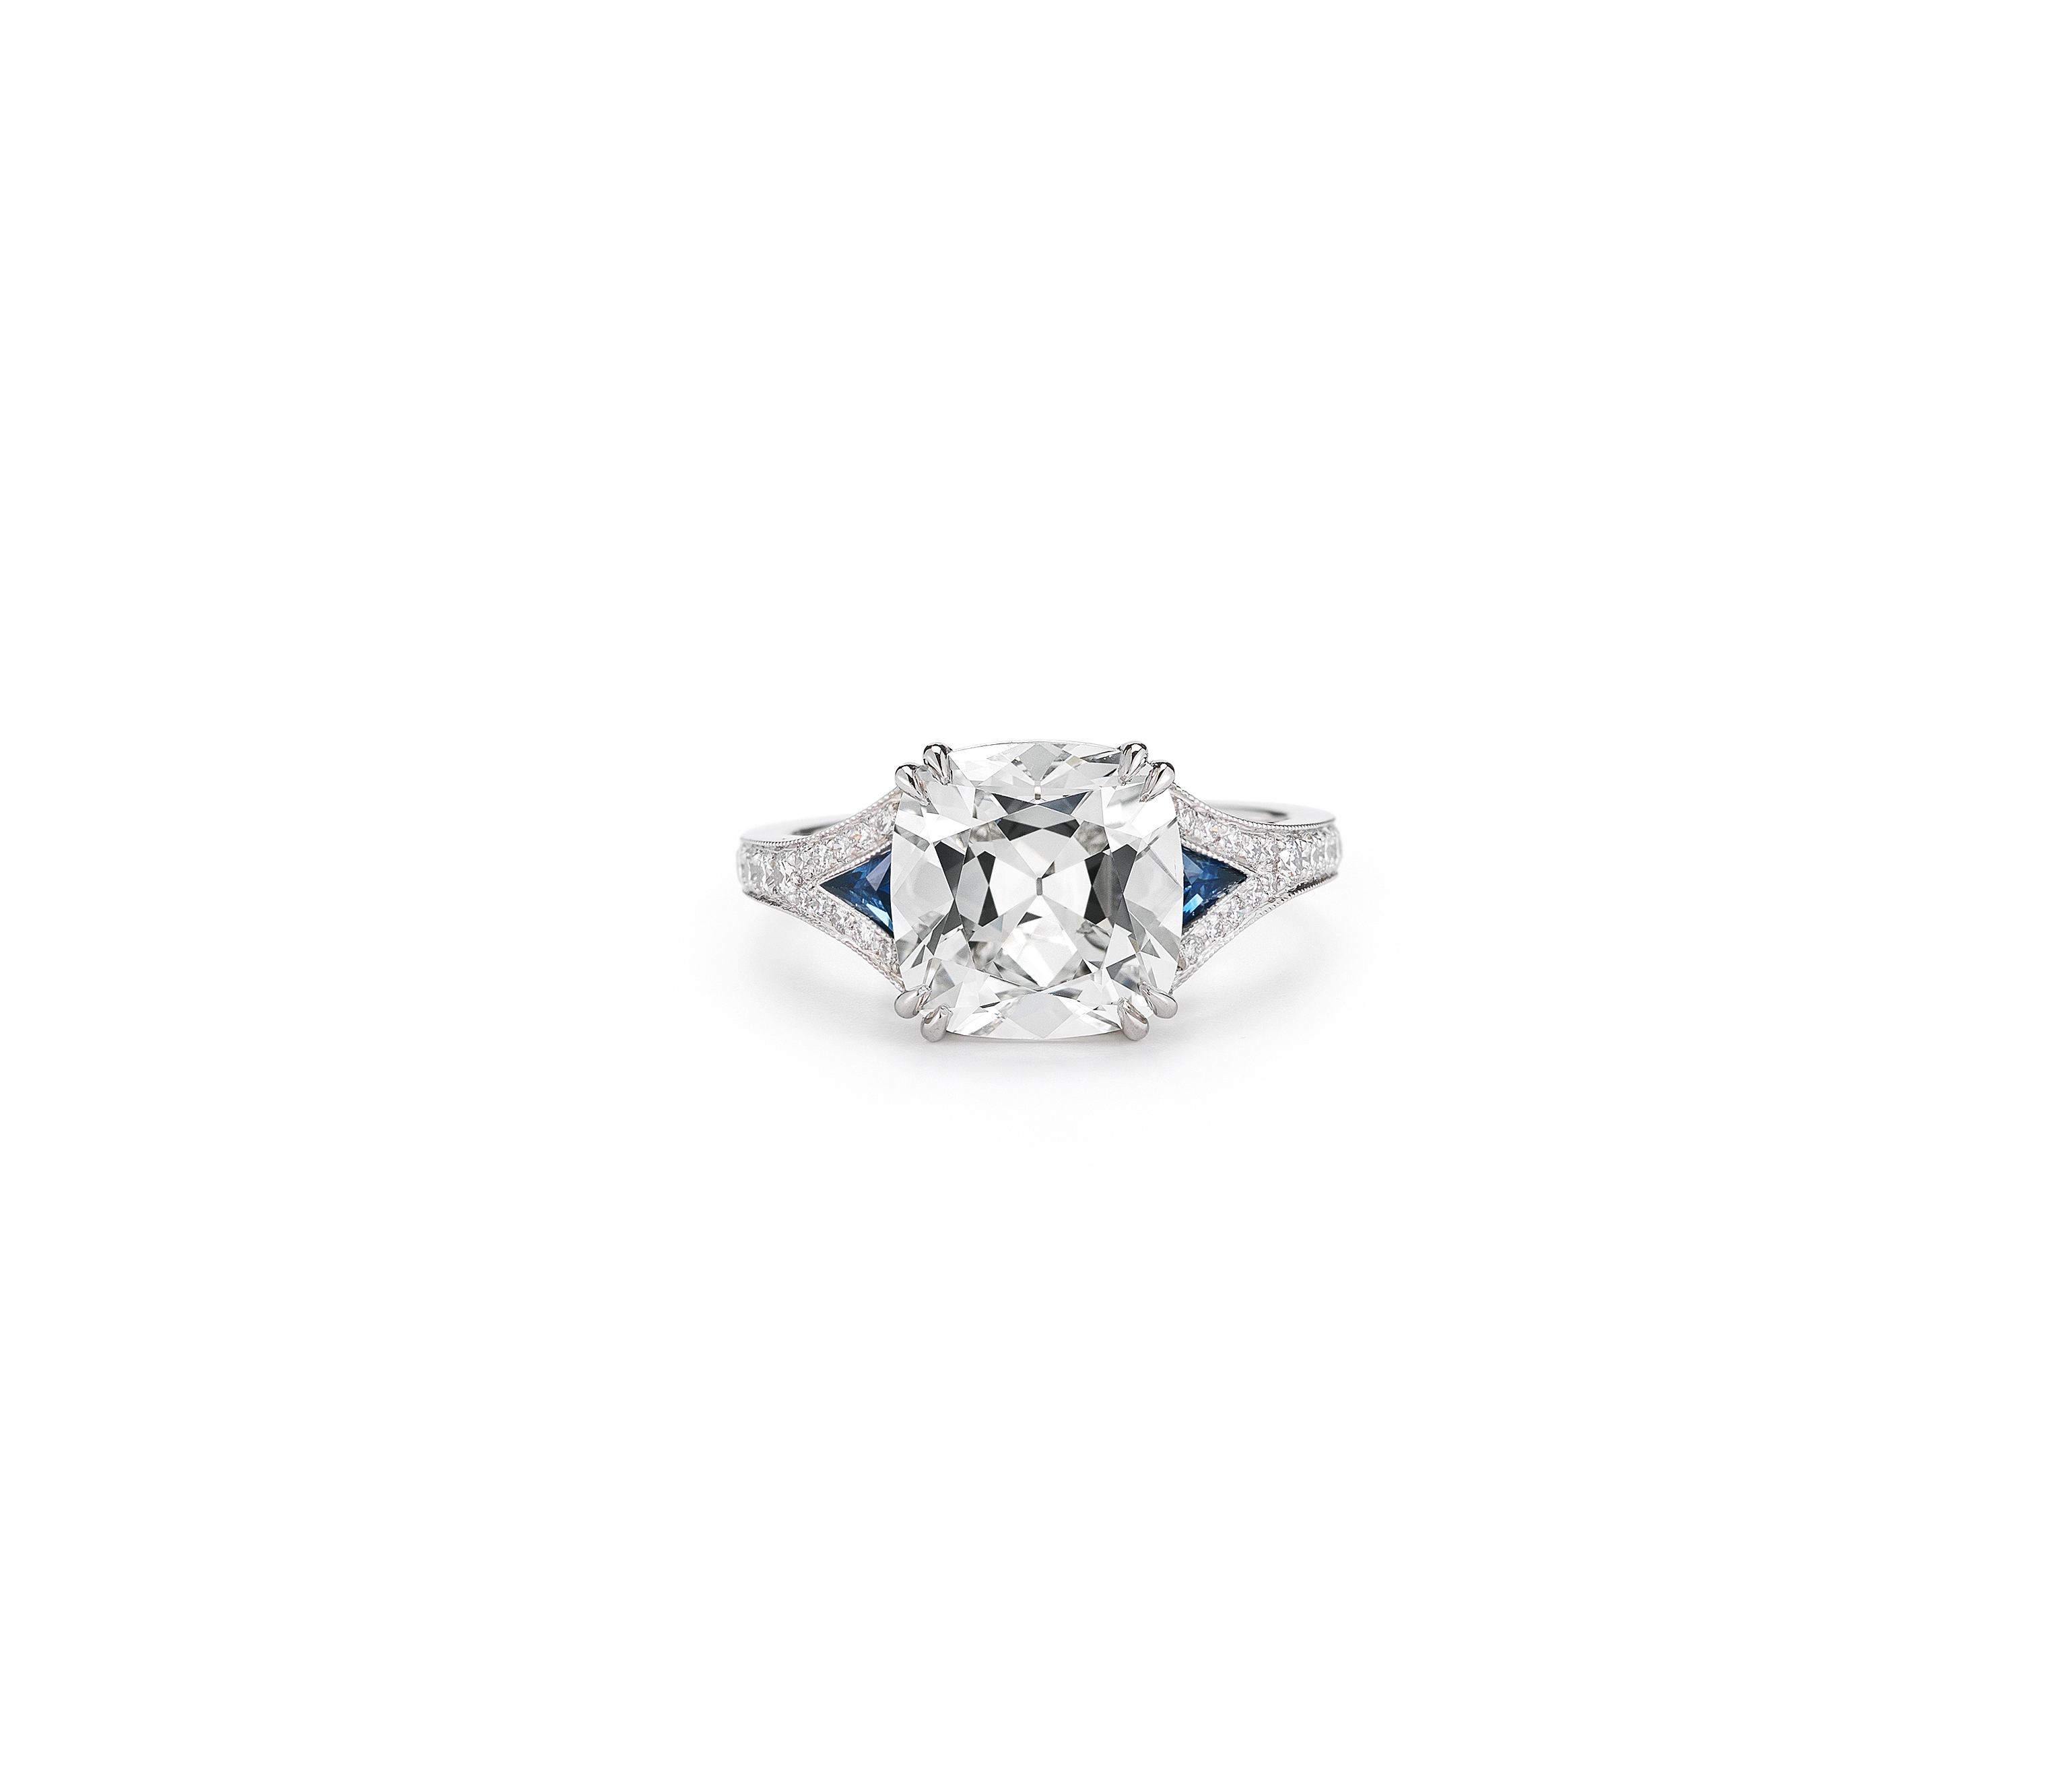 mcteigue mclelland cushion cut engagement ring with blue sapphires